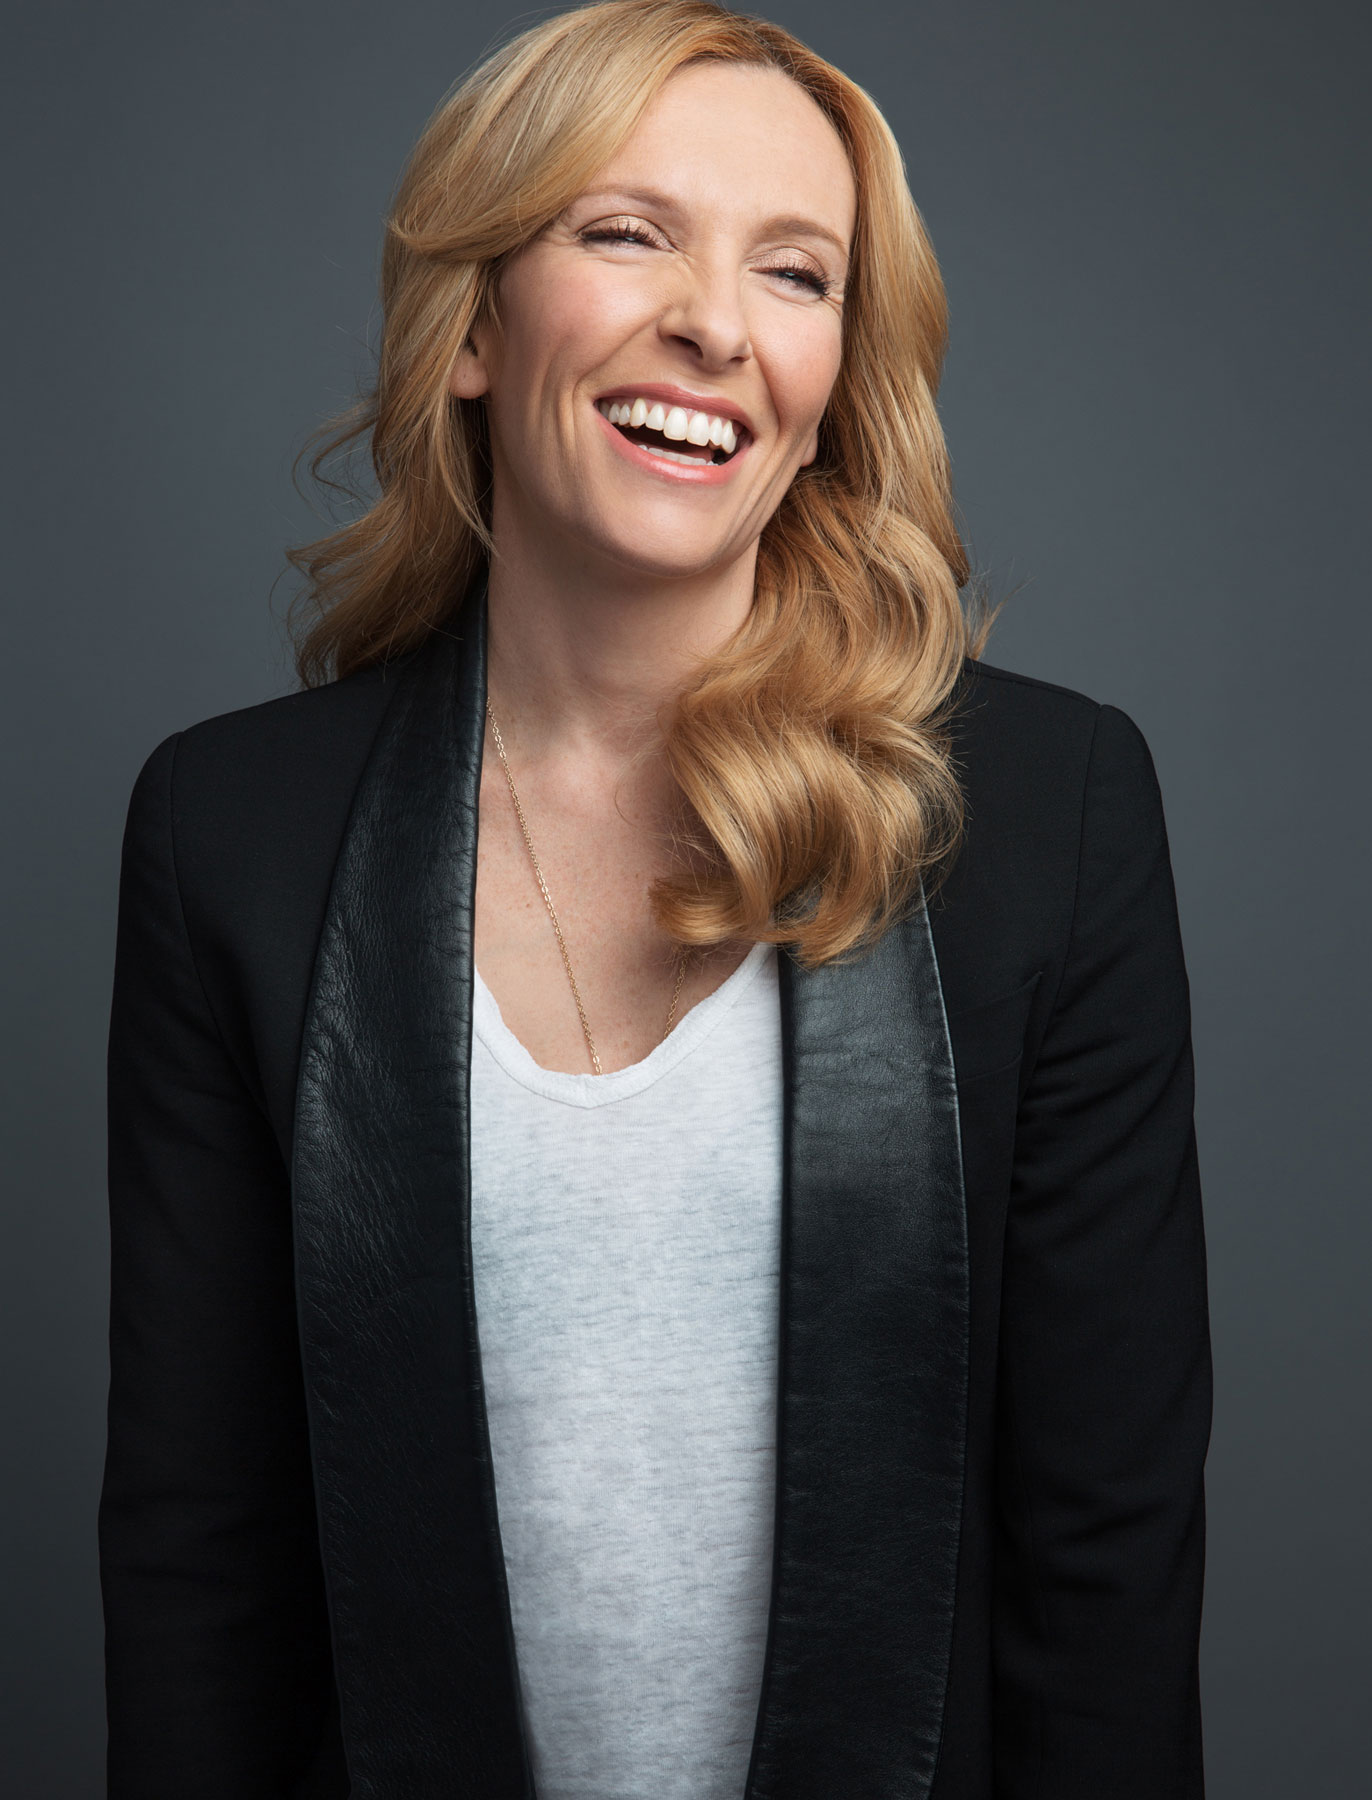 Toni Collette for WSJ- Allison Michael Orenstein